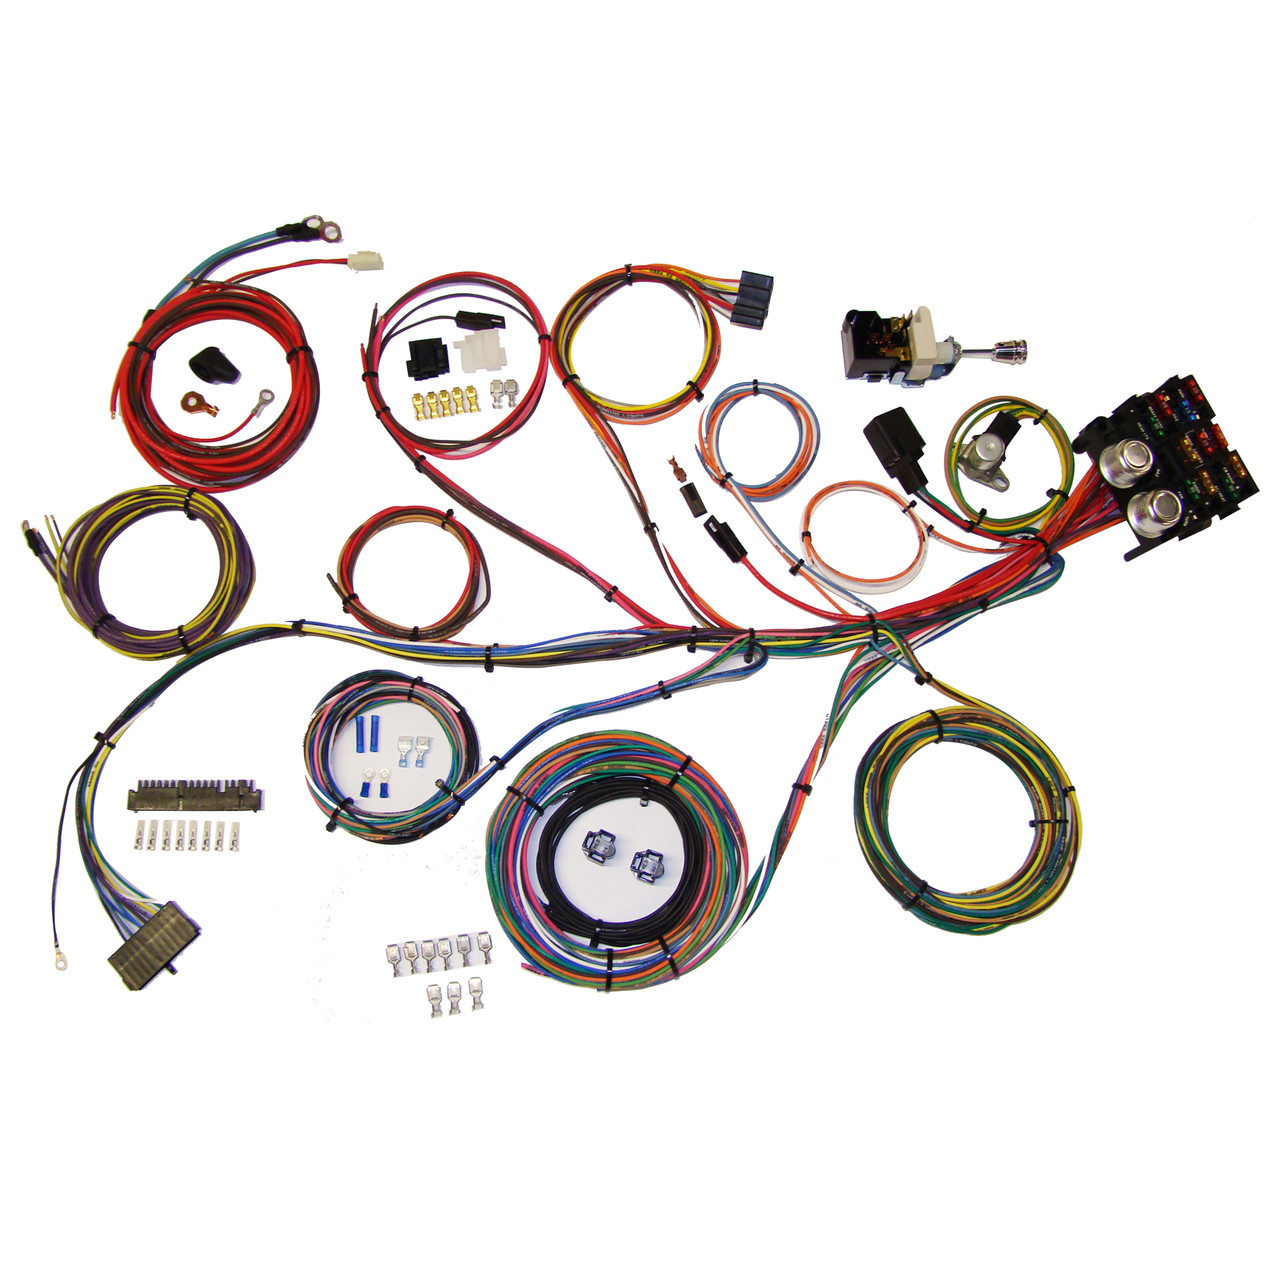 small resolution of autowire builder 19 kit 510006 street rod hot universal wiring autowire builder 19 kit 510006 street rod hot universal wiring harness